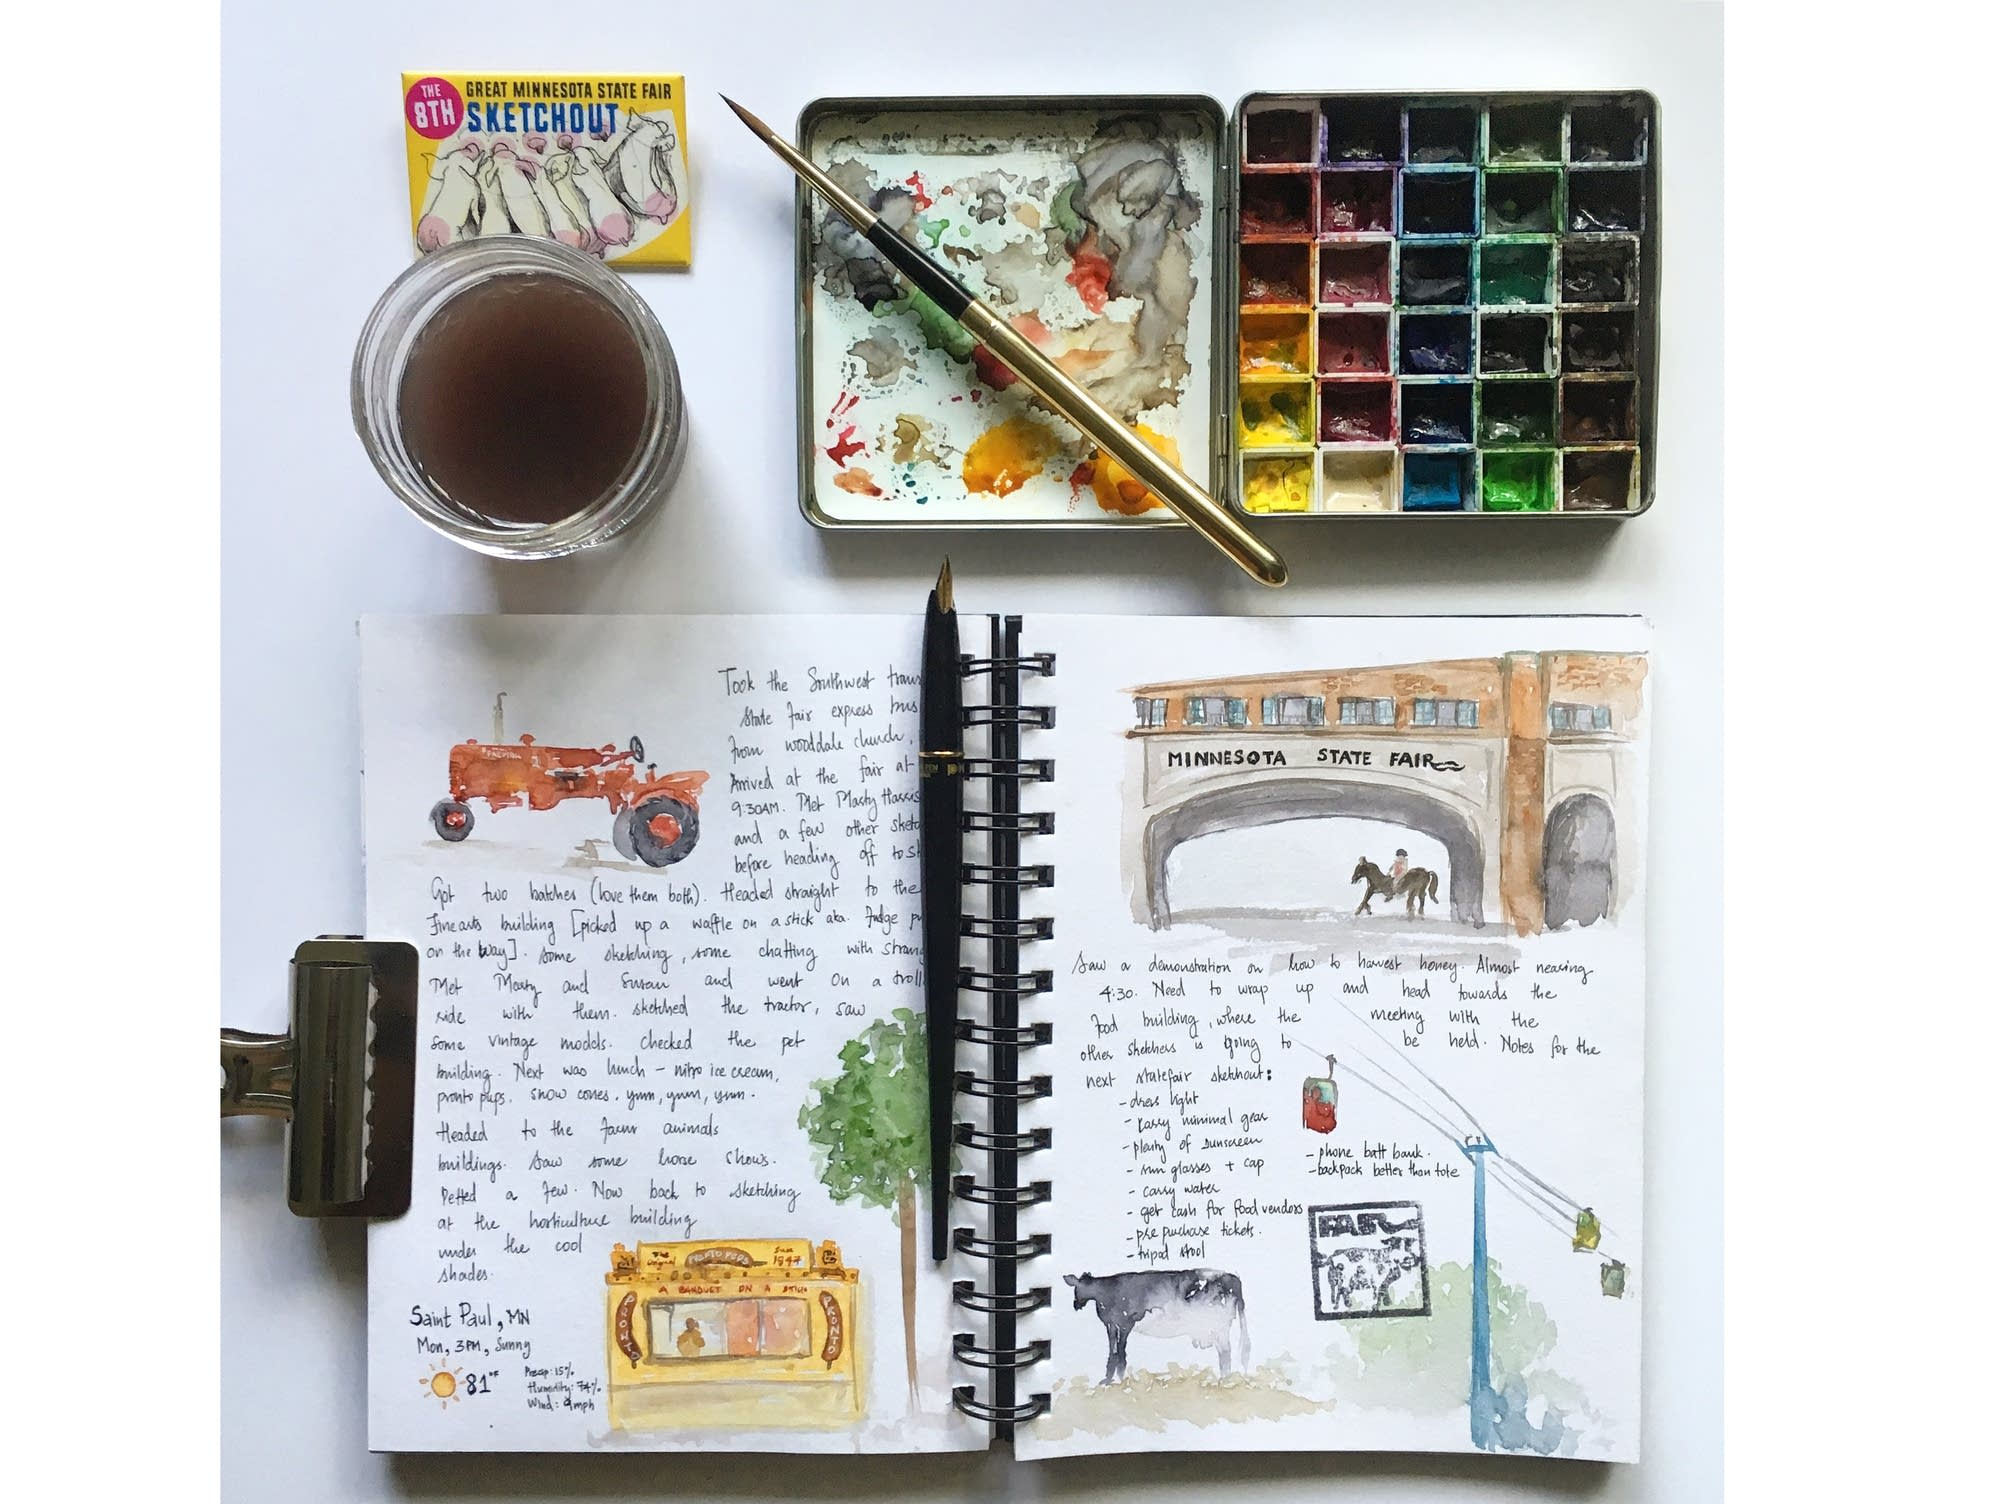 Archana Shankari's sketch journal